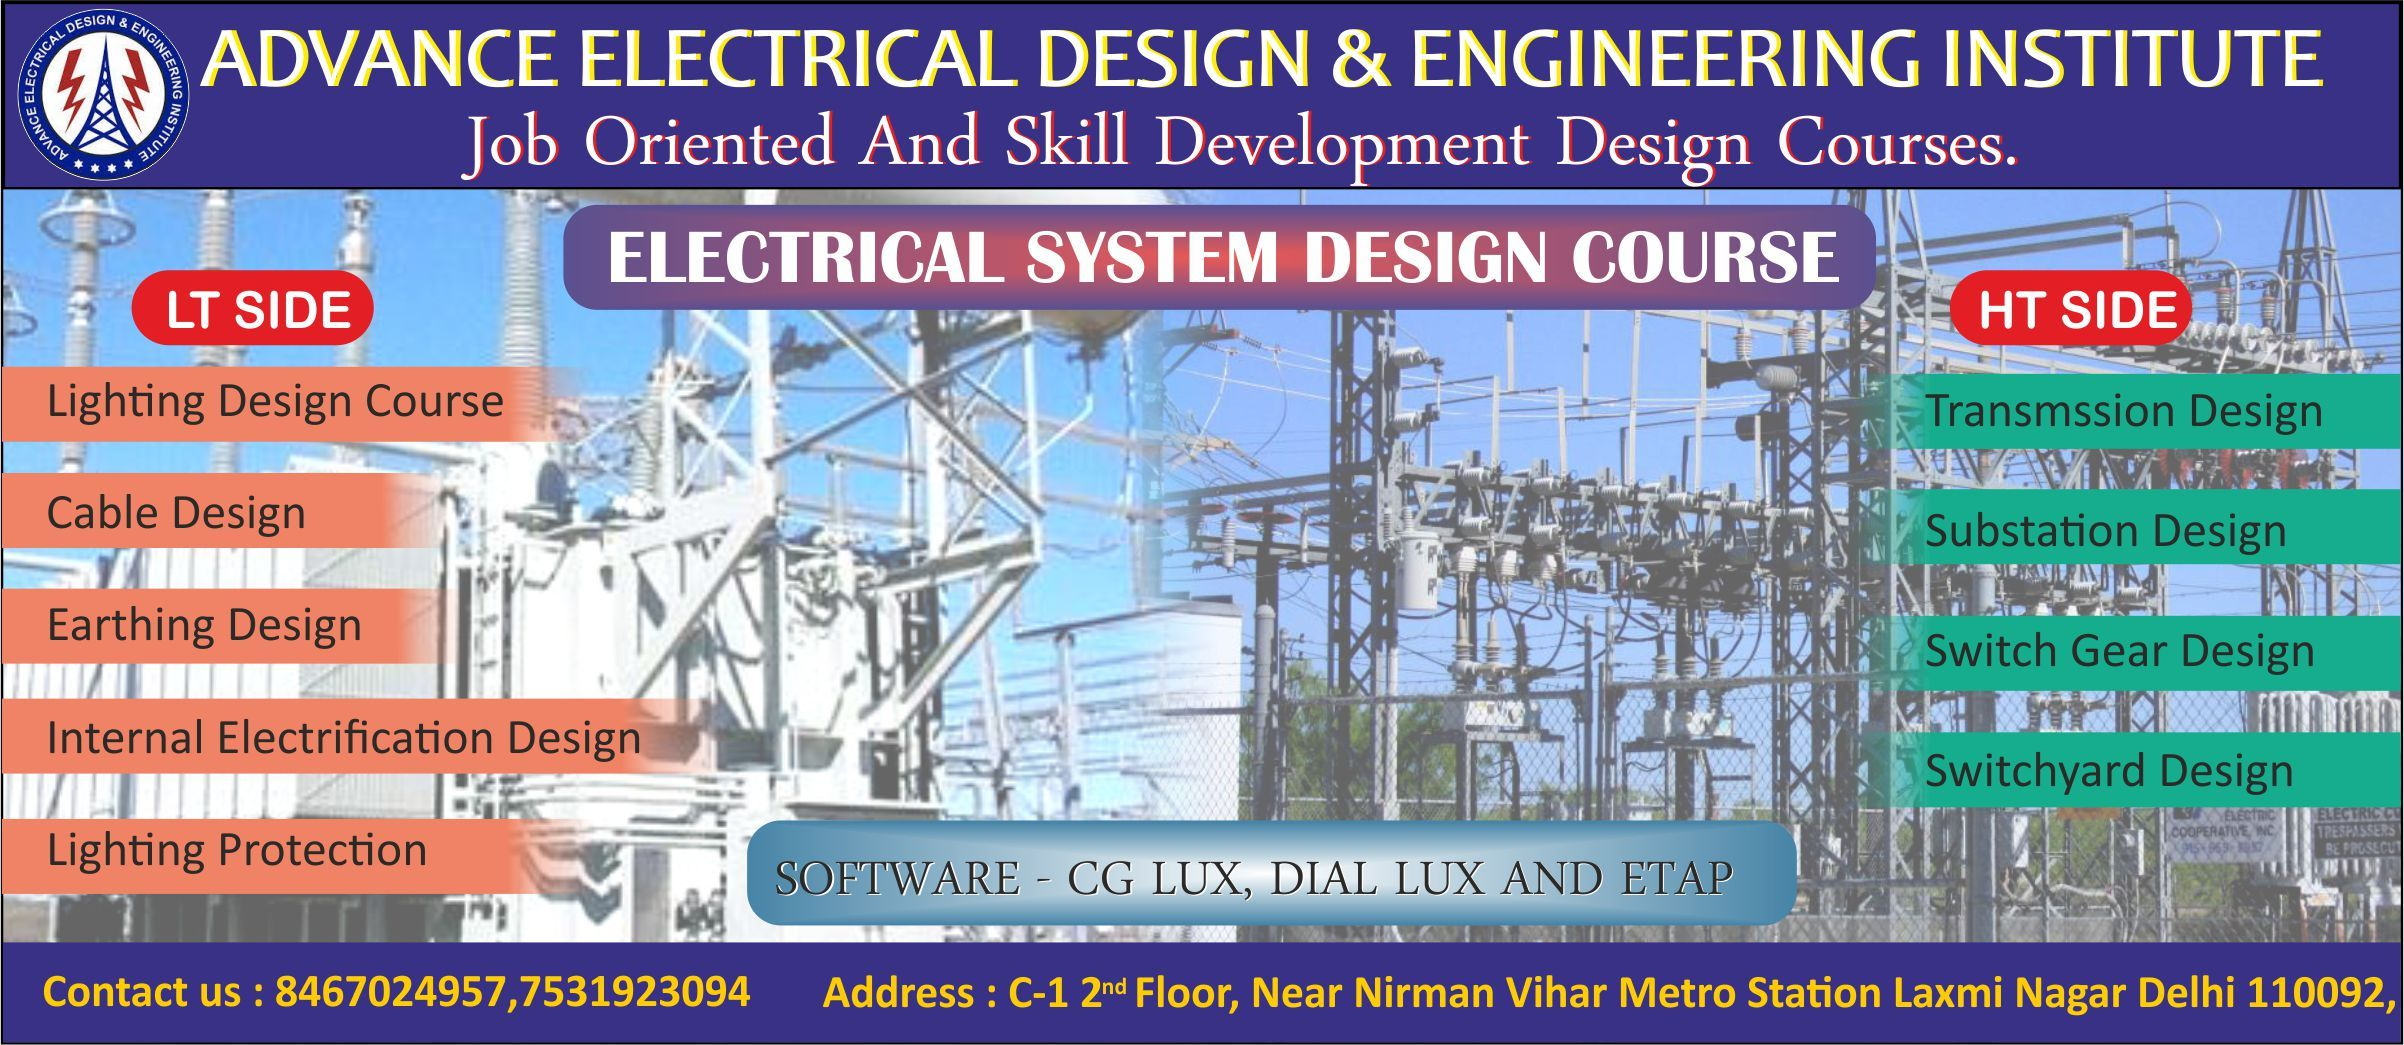 Pin By Advance Electricaldesign On Solar And Electrical Design Electricity Basic Navy Training Courses